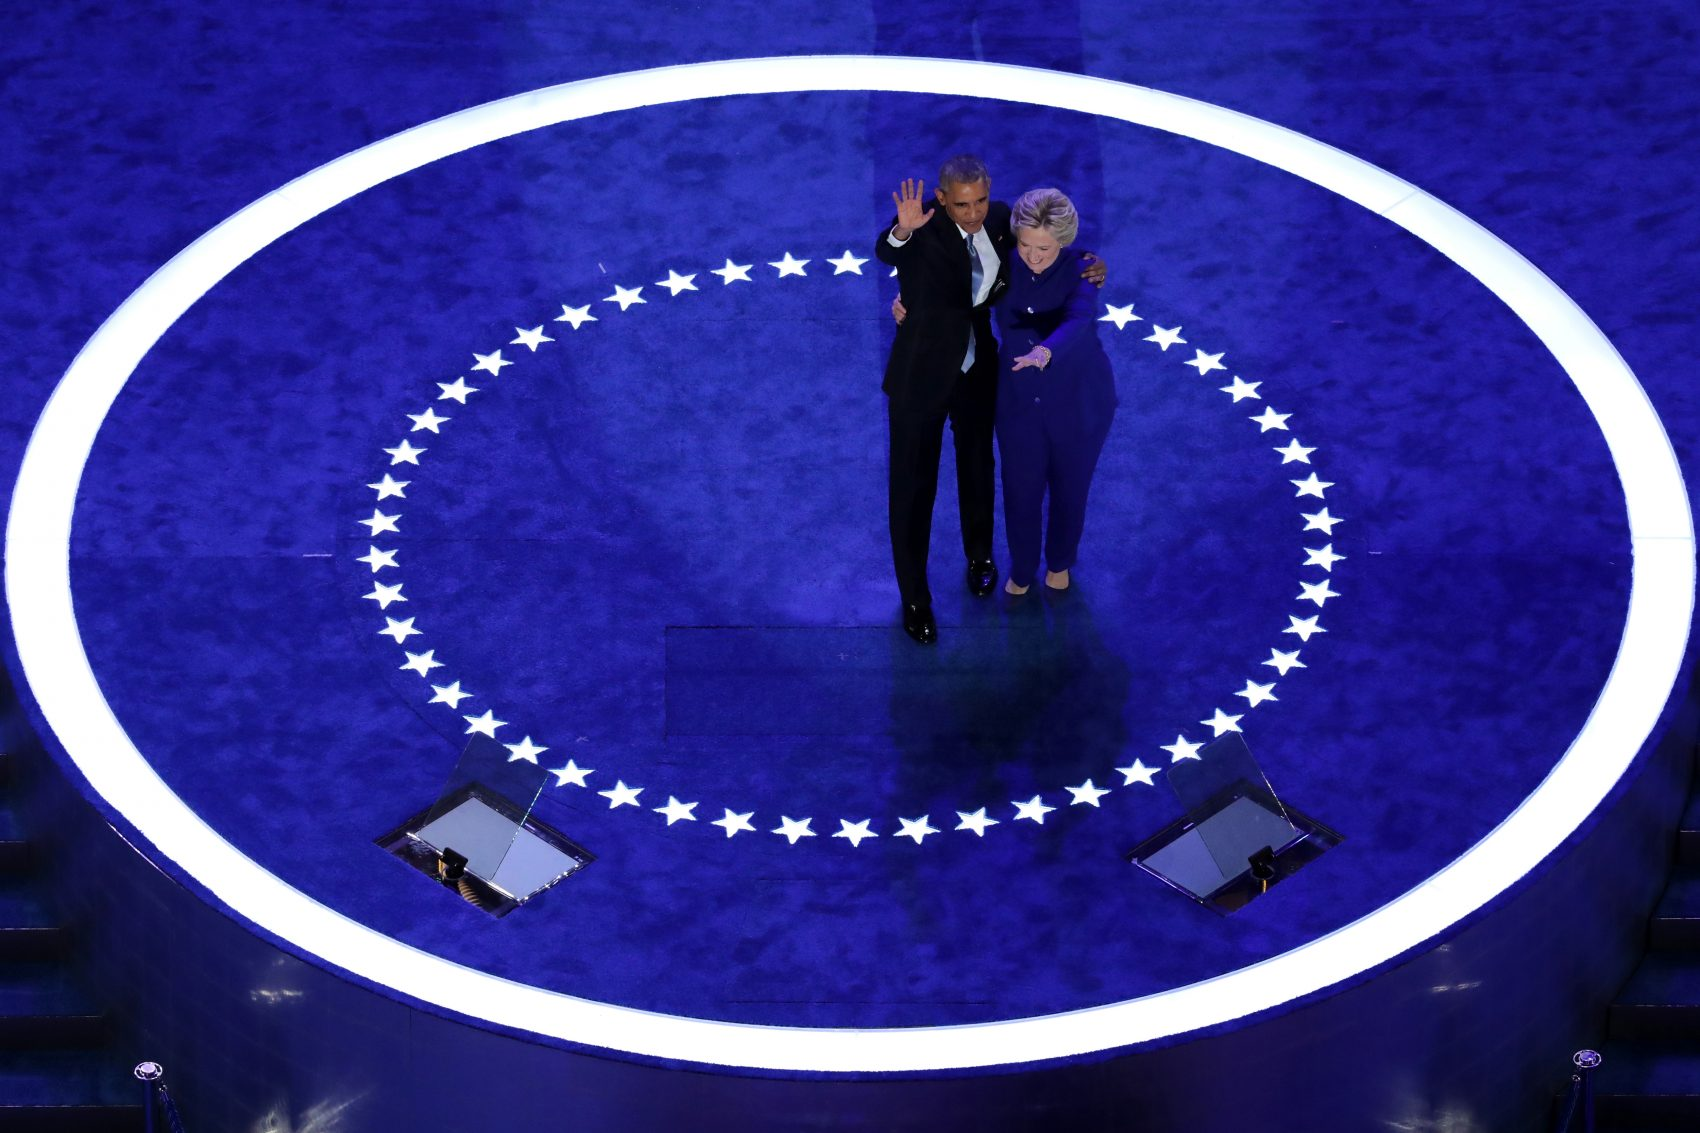 President Barack Obama and Democratic presidential nominee Hillary Clinton wave to the crowd on the third day of the Democratic National Convention at the Wells Fargo Center, July 27, 2016 in Philadelphia. (Chip Somodevilla/Getty Images)